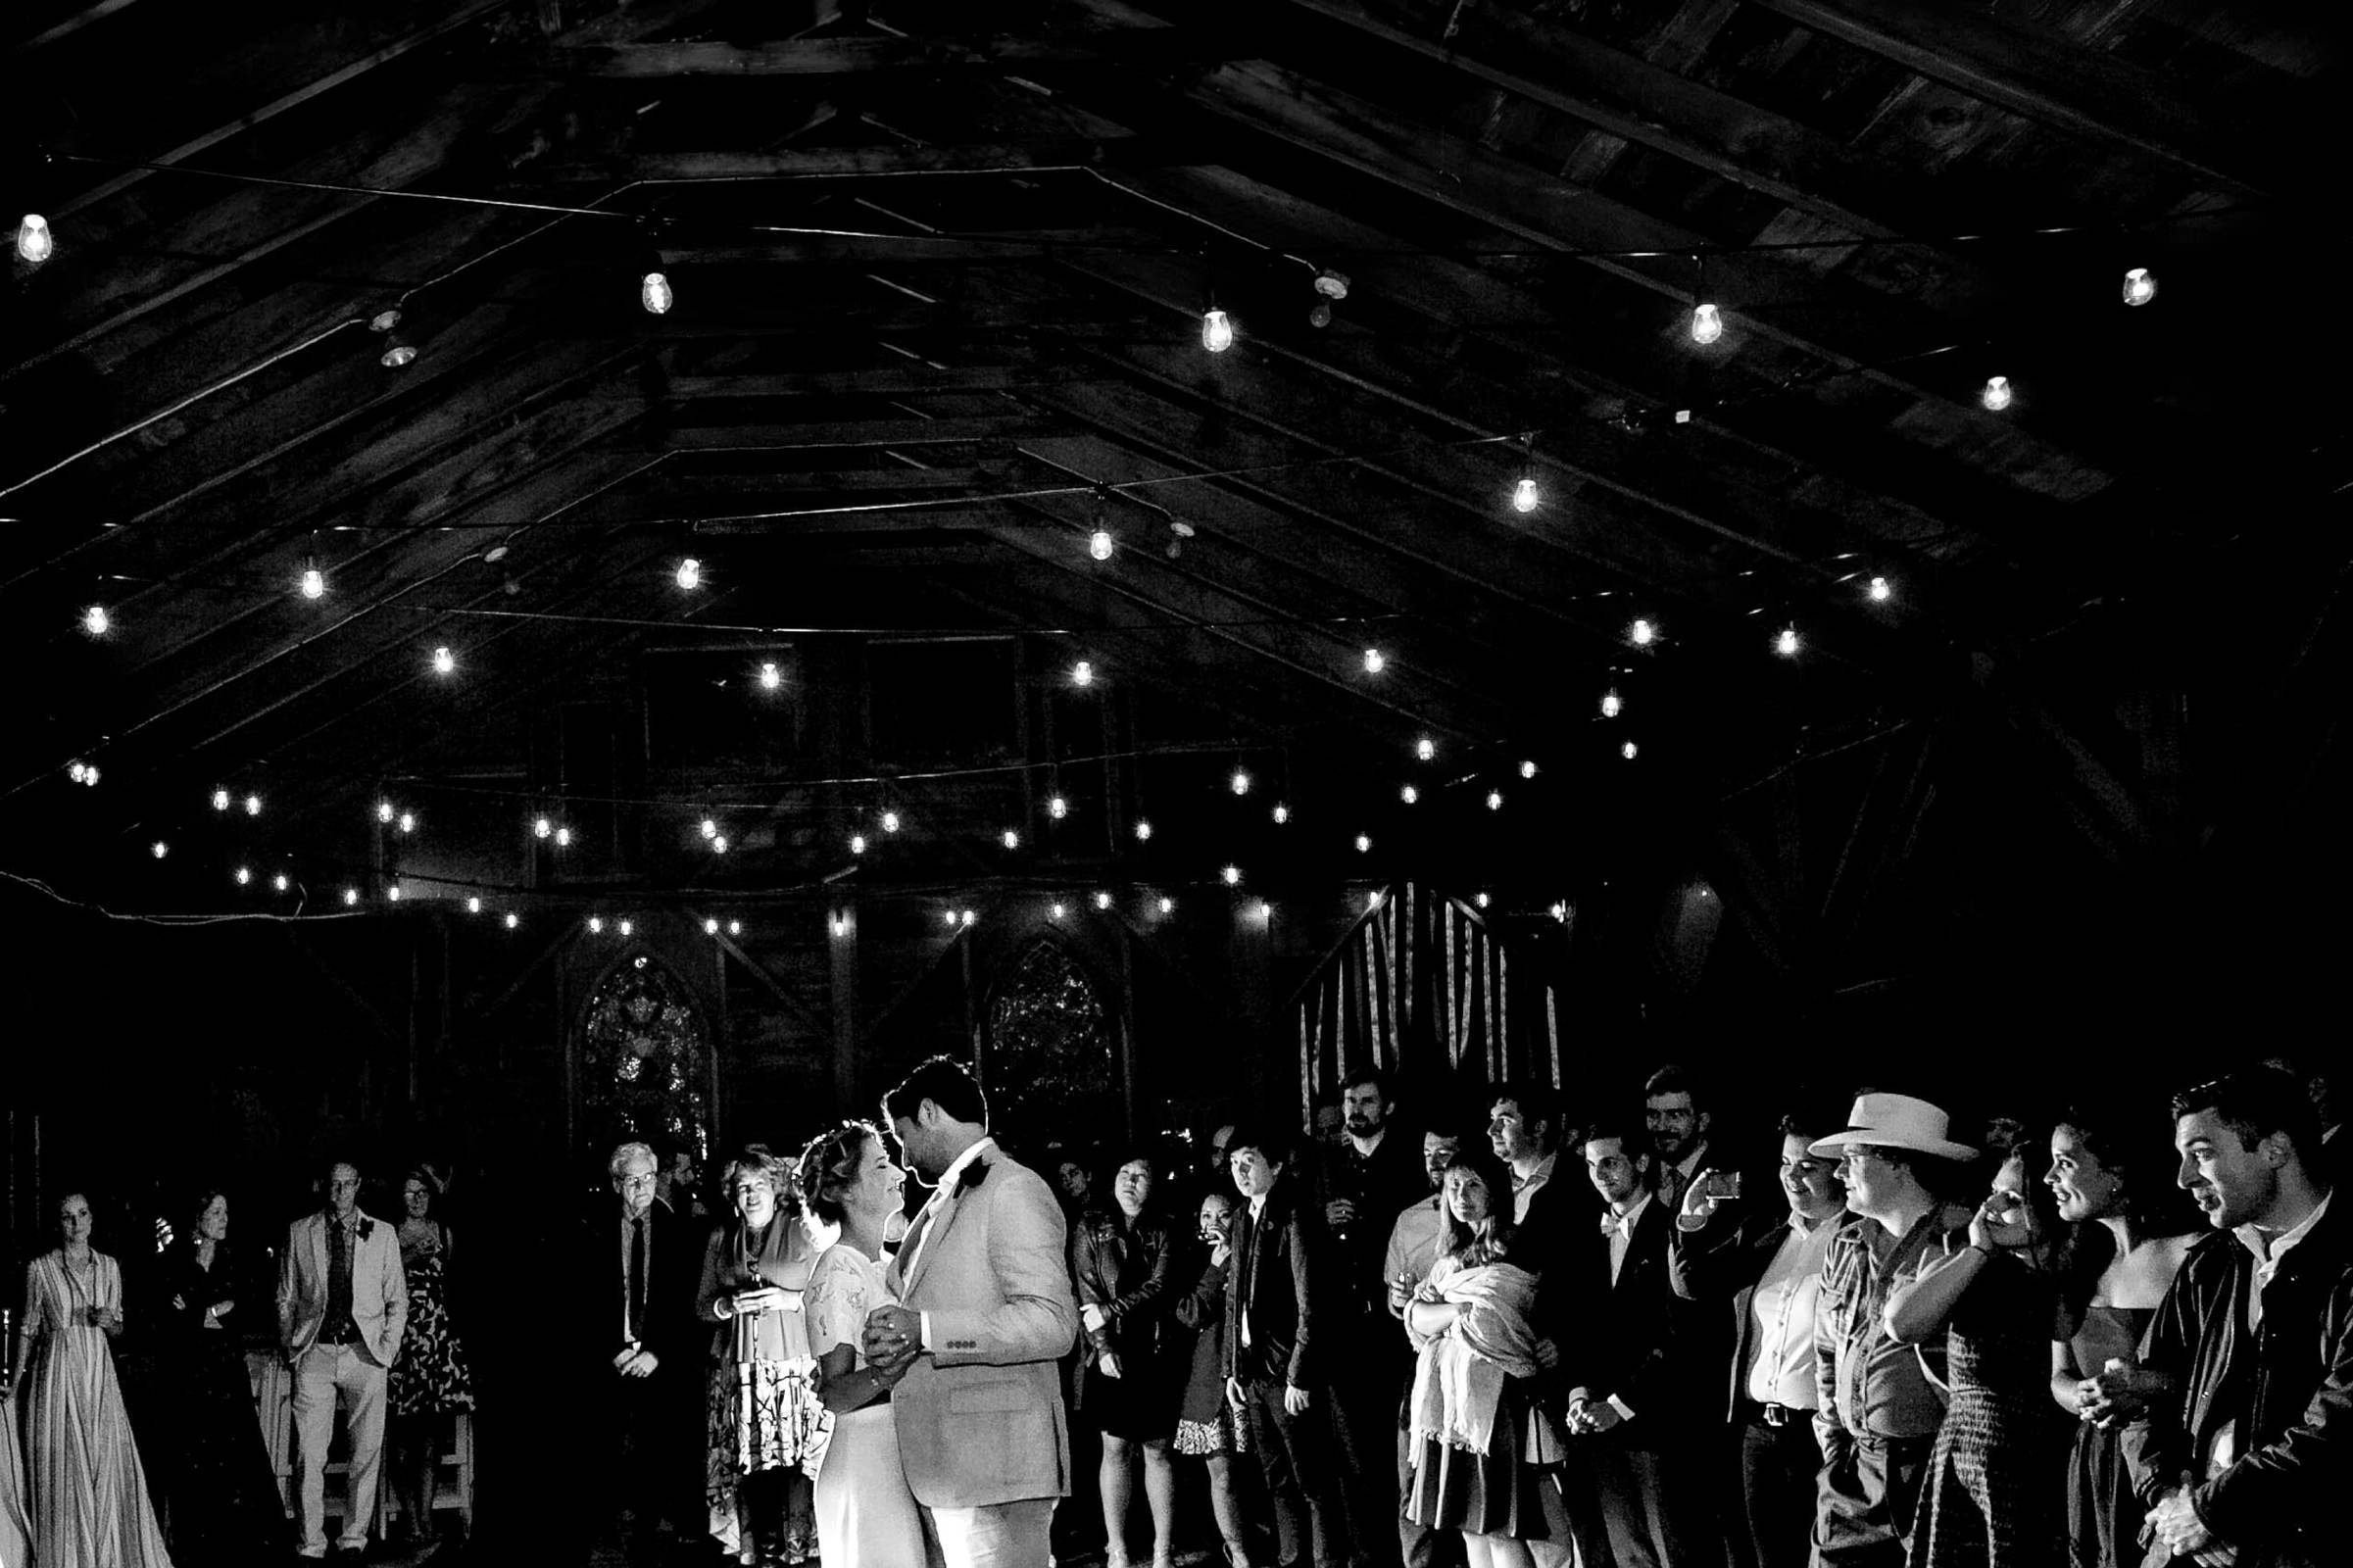 Bride and groom first dance in a Grateful Dead barn during a Sonoma wine country wedding reception